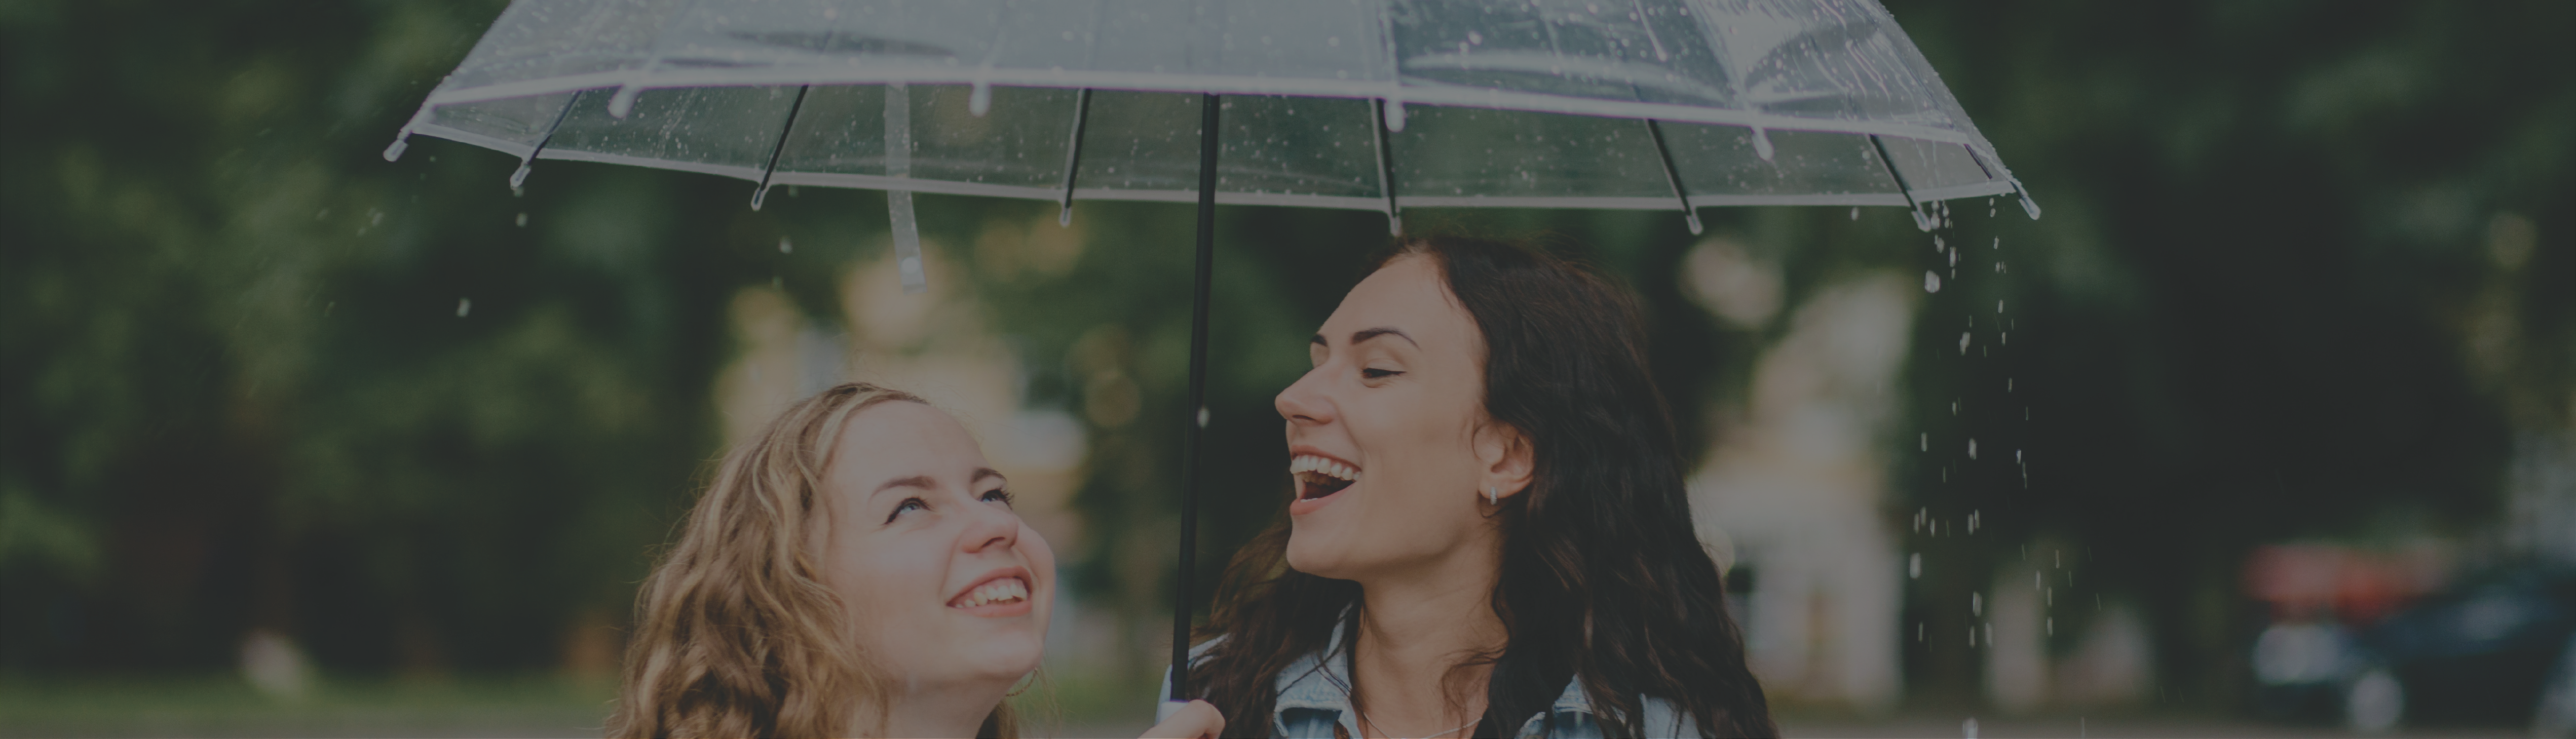 Two women smiling underneath umbrella metaphor for what is umbrella insurance